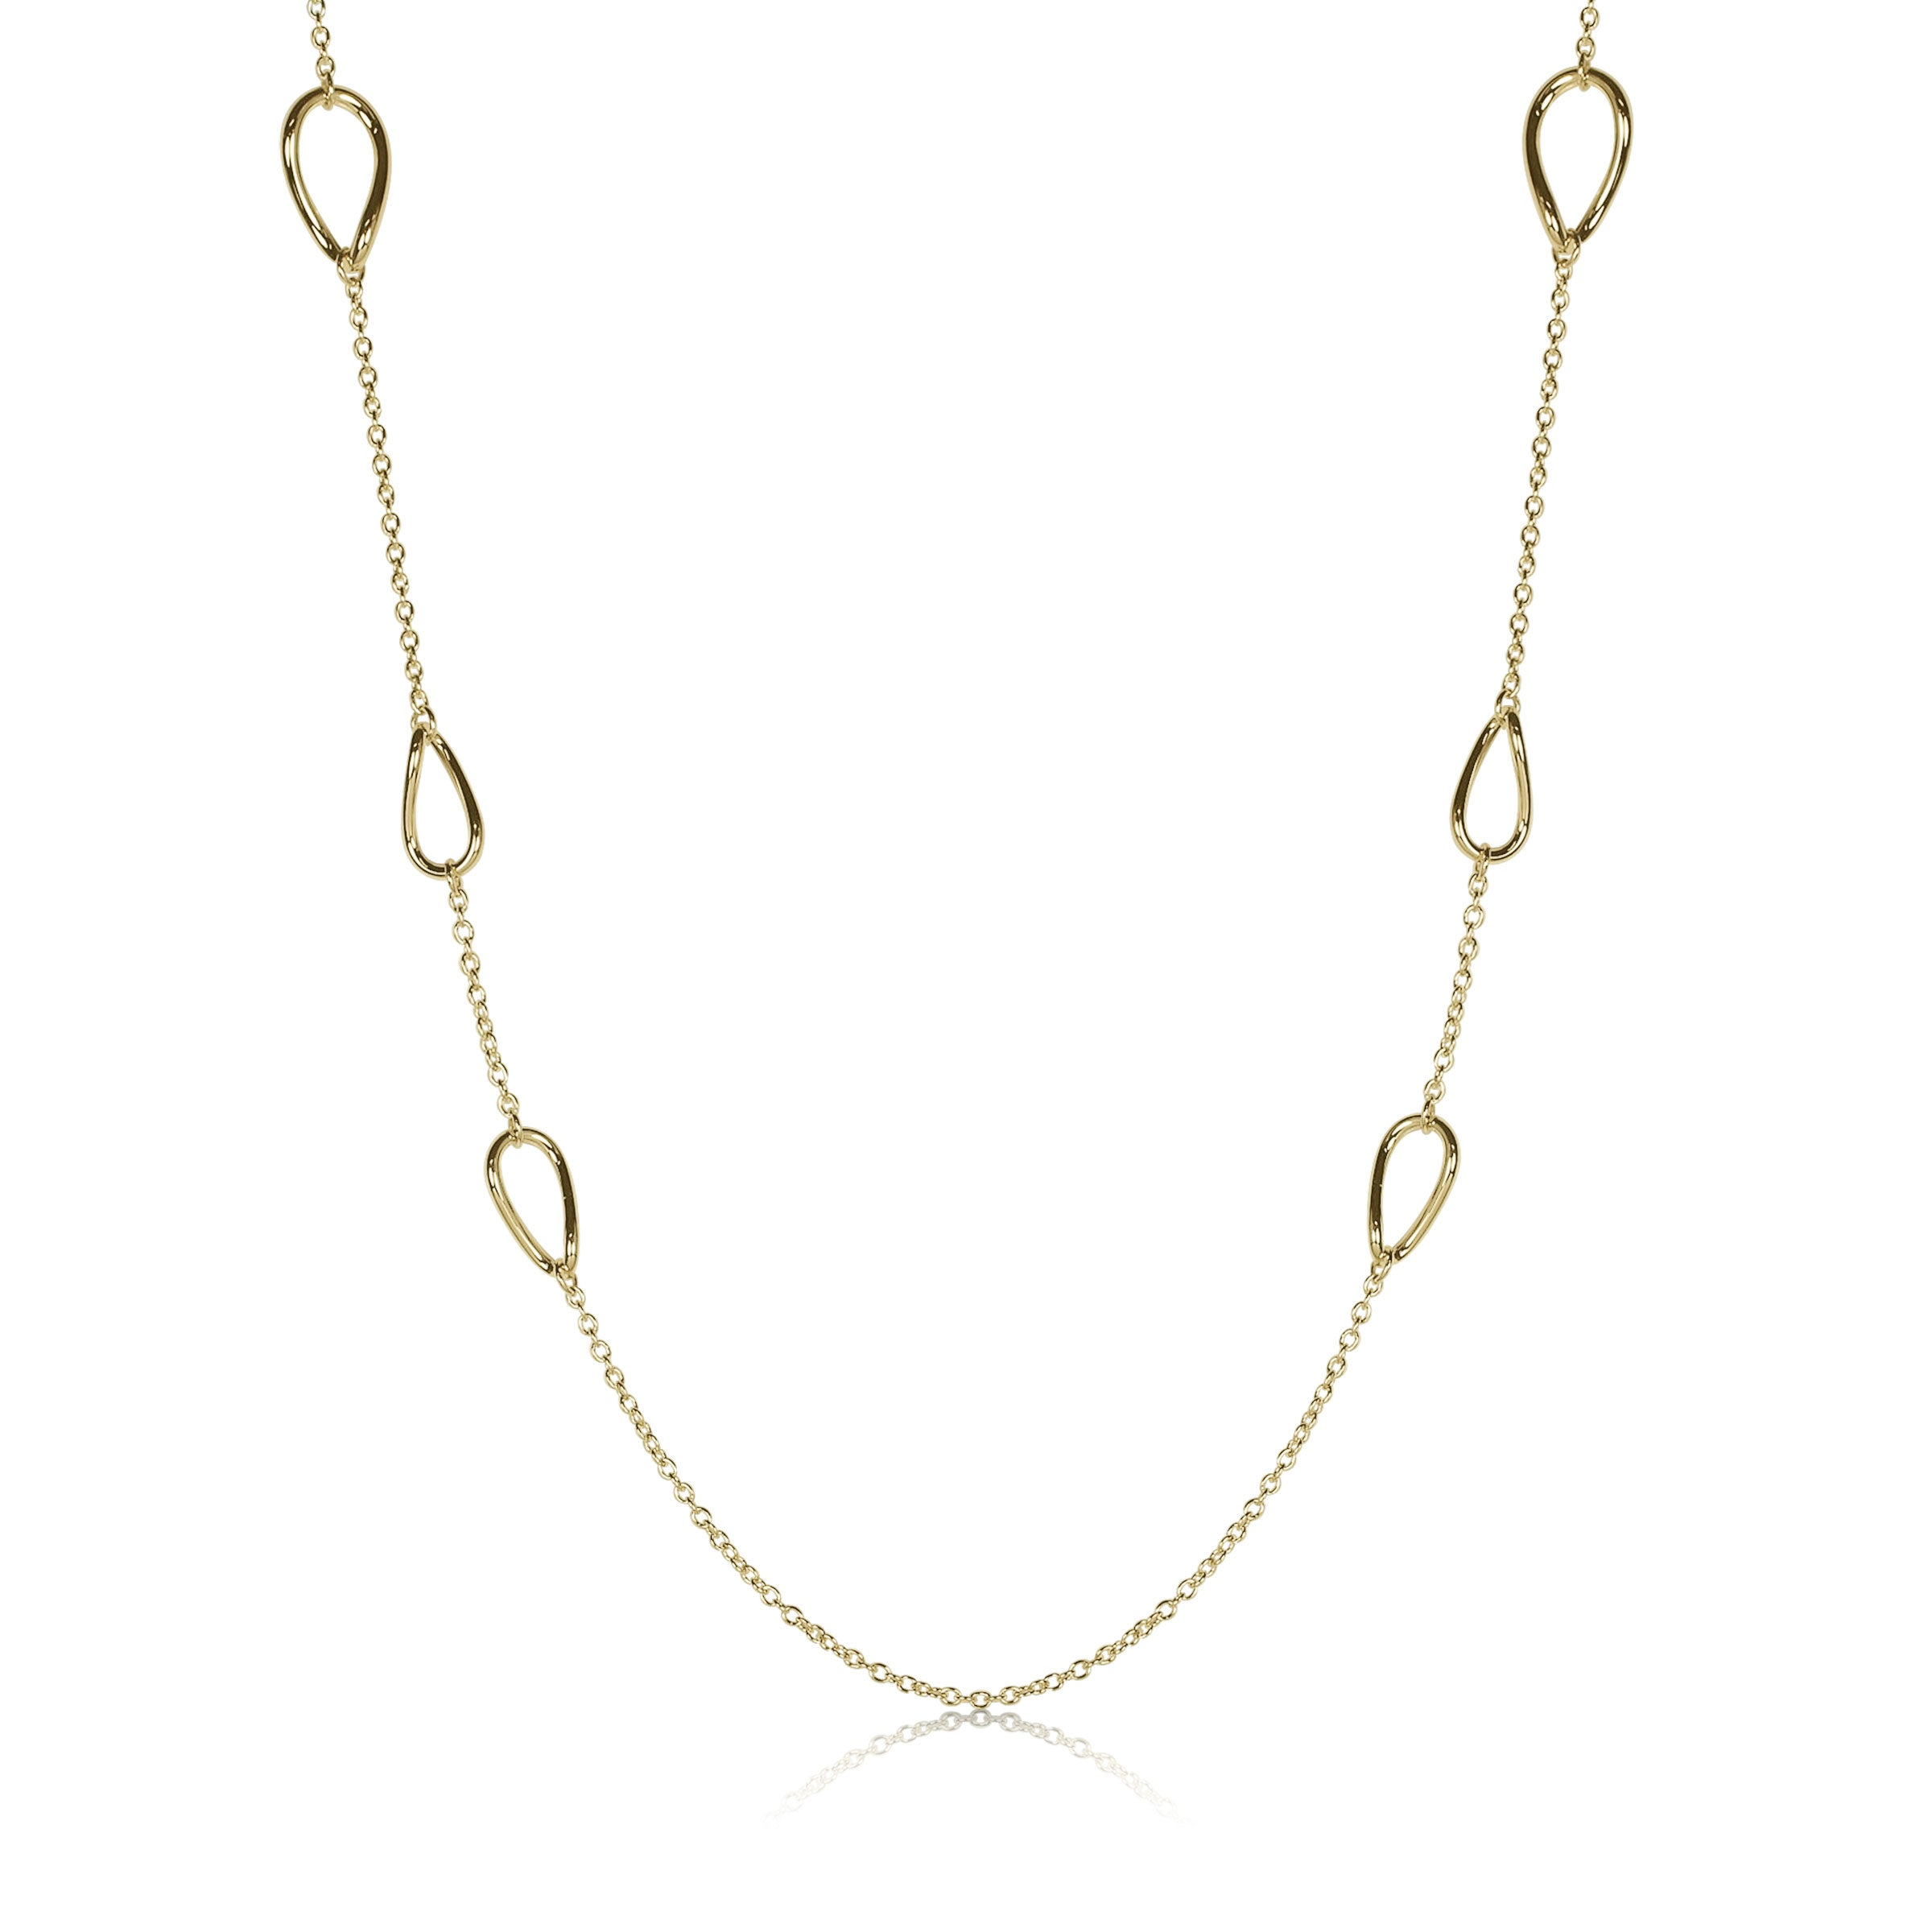 Large Open Link and Chain Necklace, 32 Inches, 14K Yellow Gold